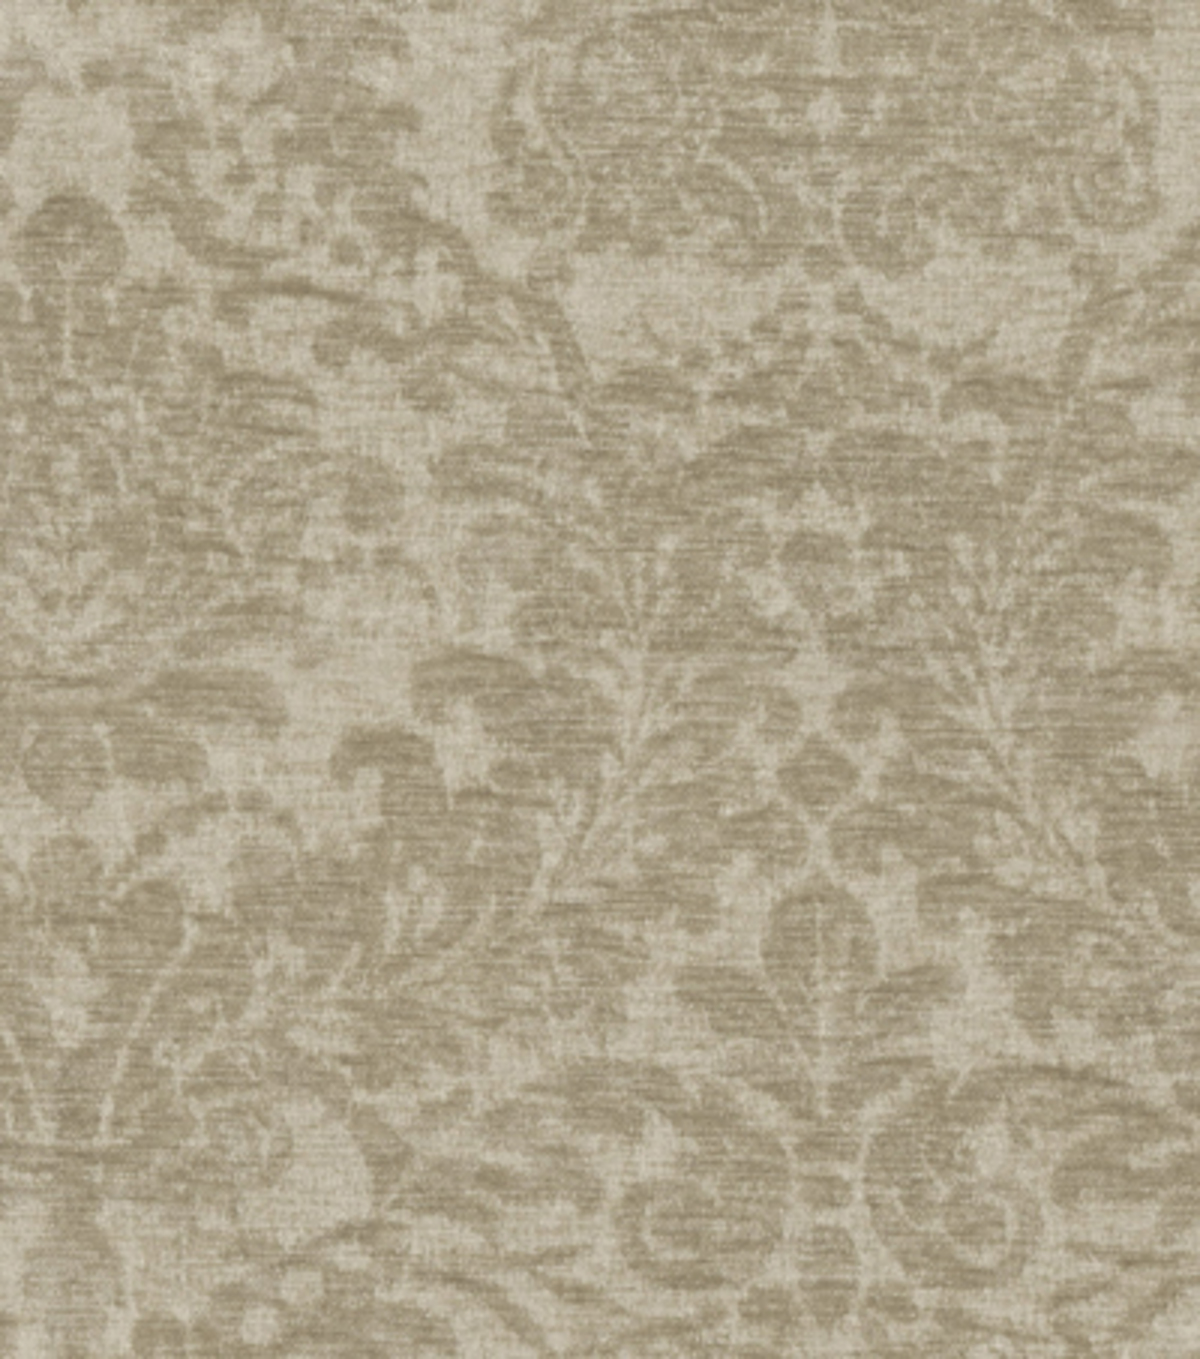 Home Decor 8\u0022x8\u0022 Fabric Swatch-Upholstery-Williamsburg Carrington/Linen